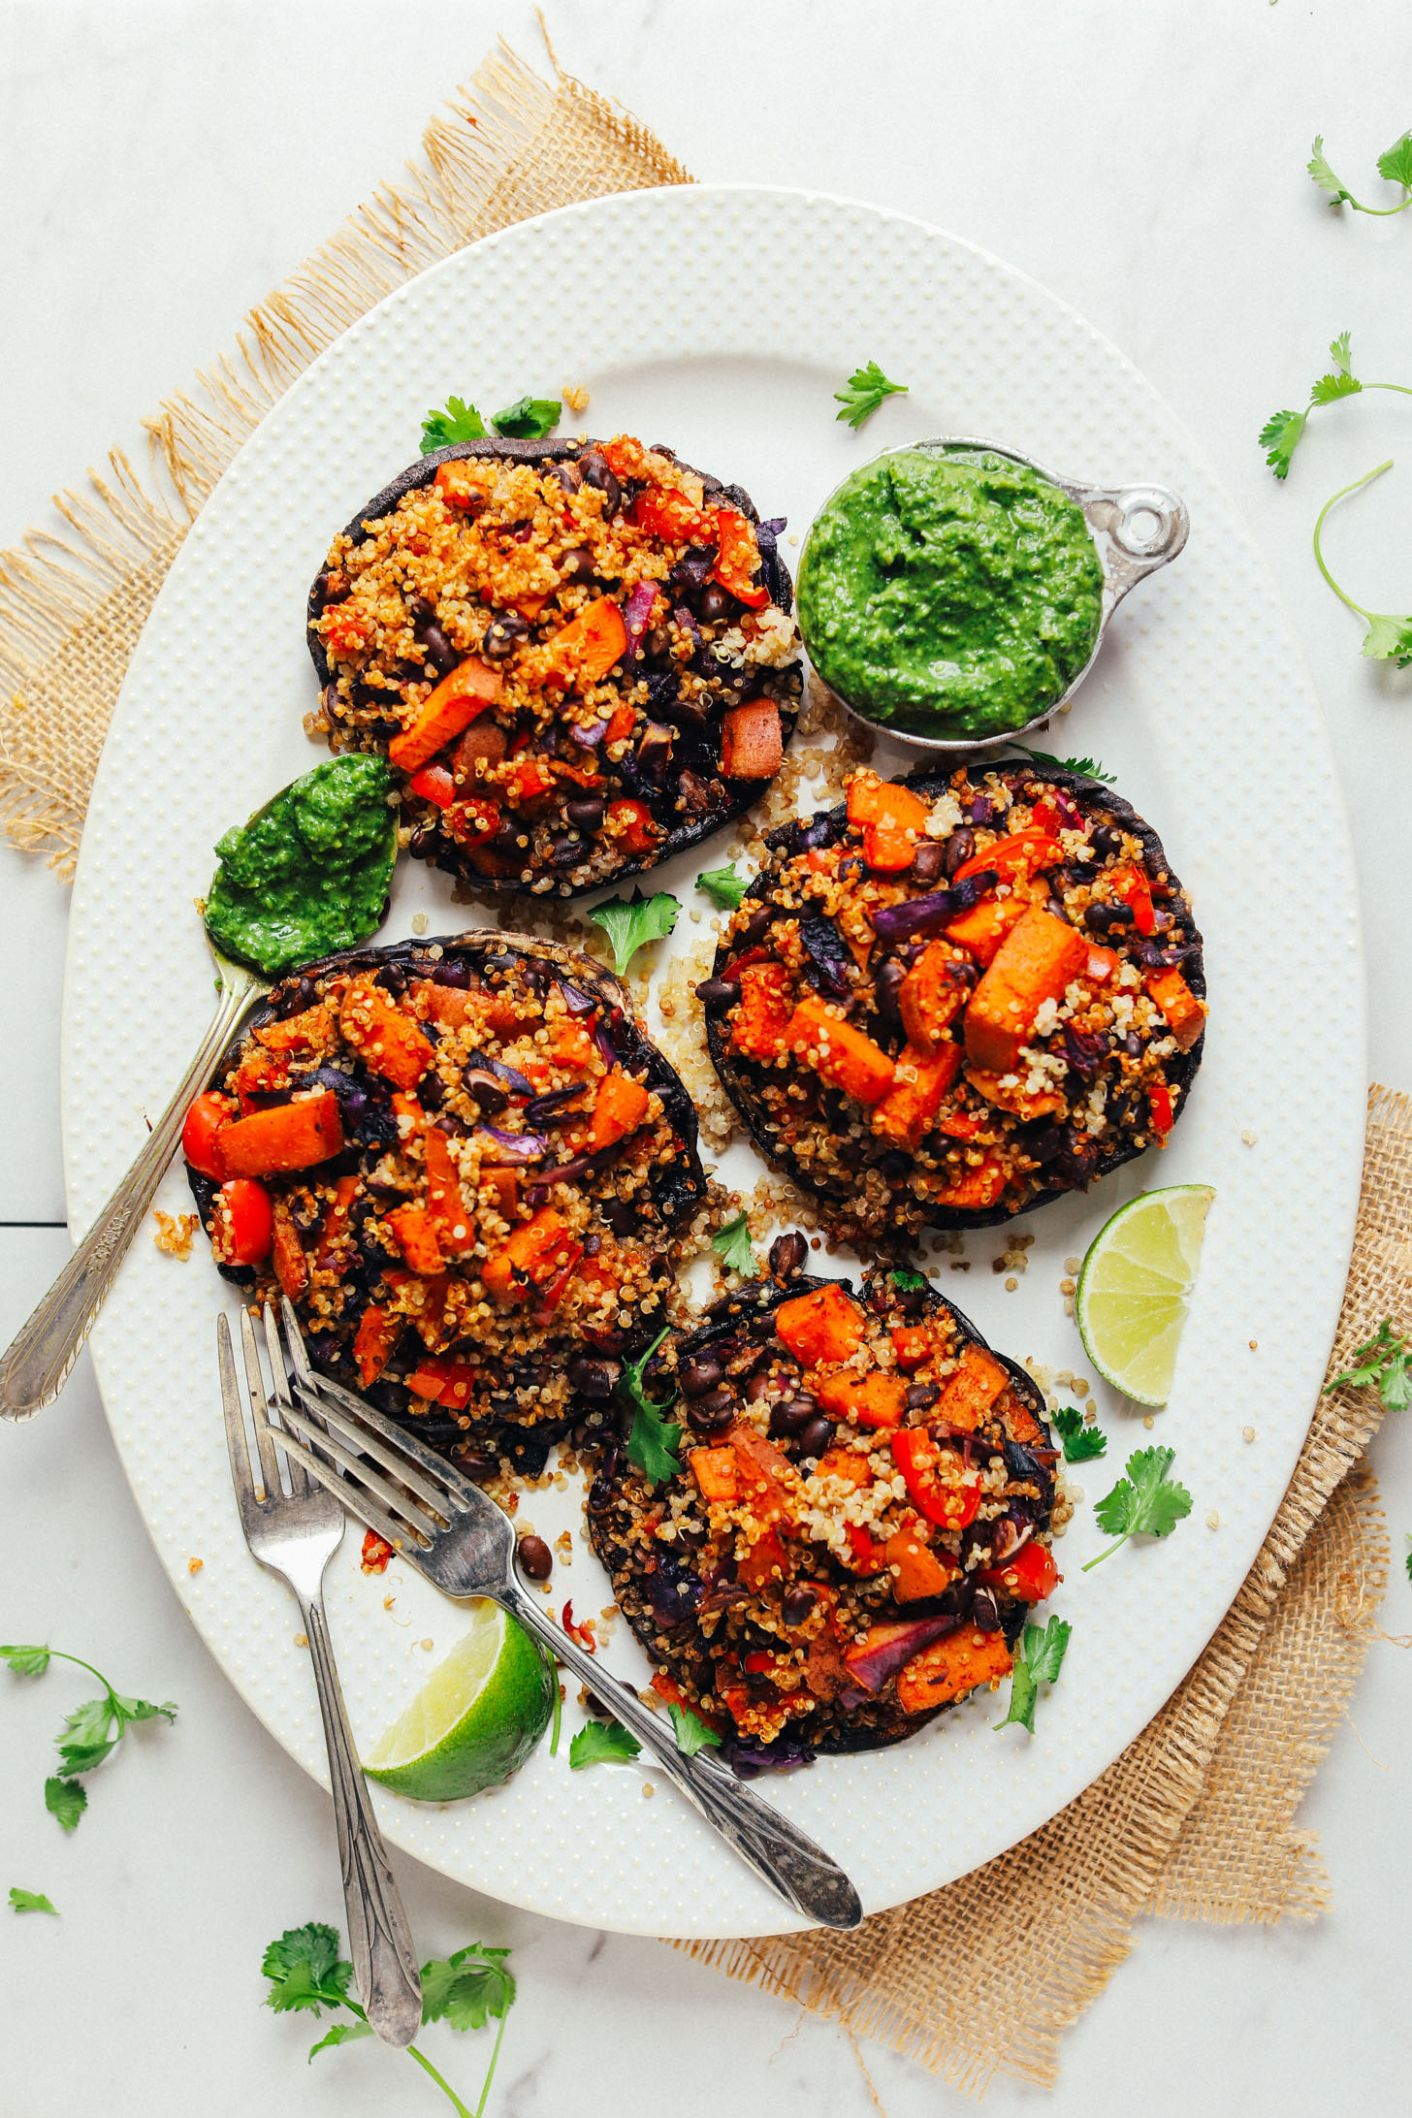 Quinoa & Vegetable Stuffed Portobello Mushrooms - Recipe Vegetarian Quinoa Stuffing